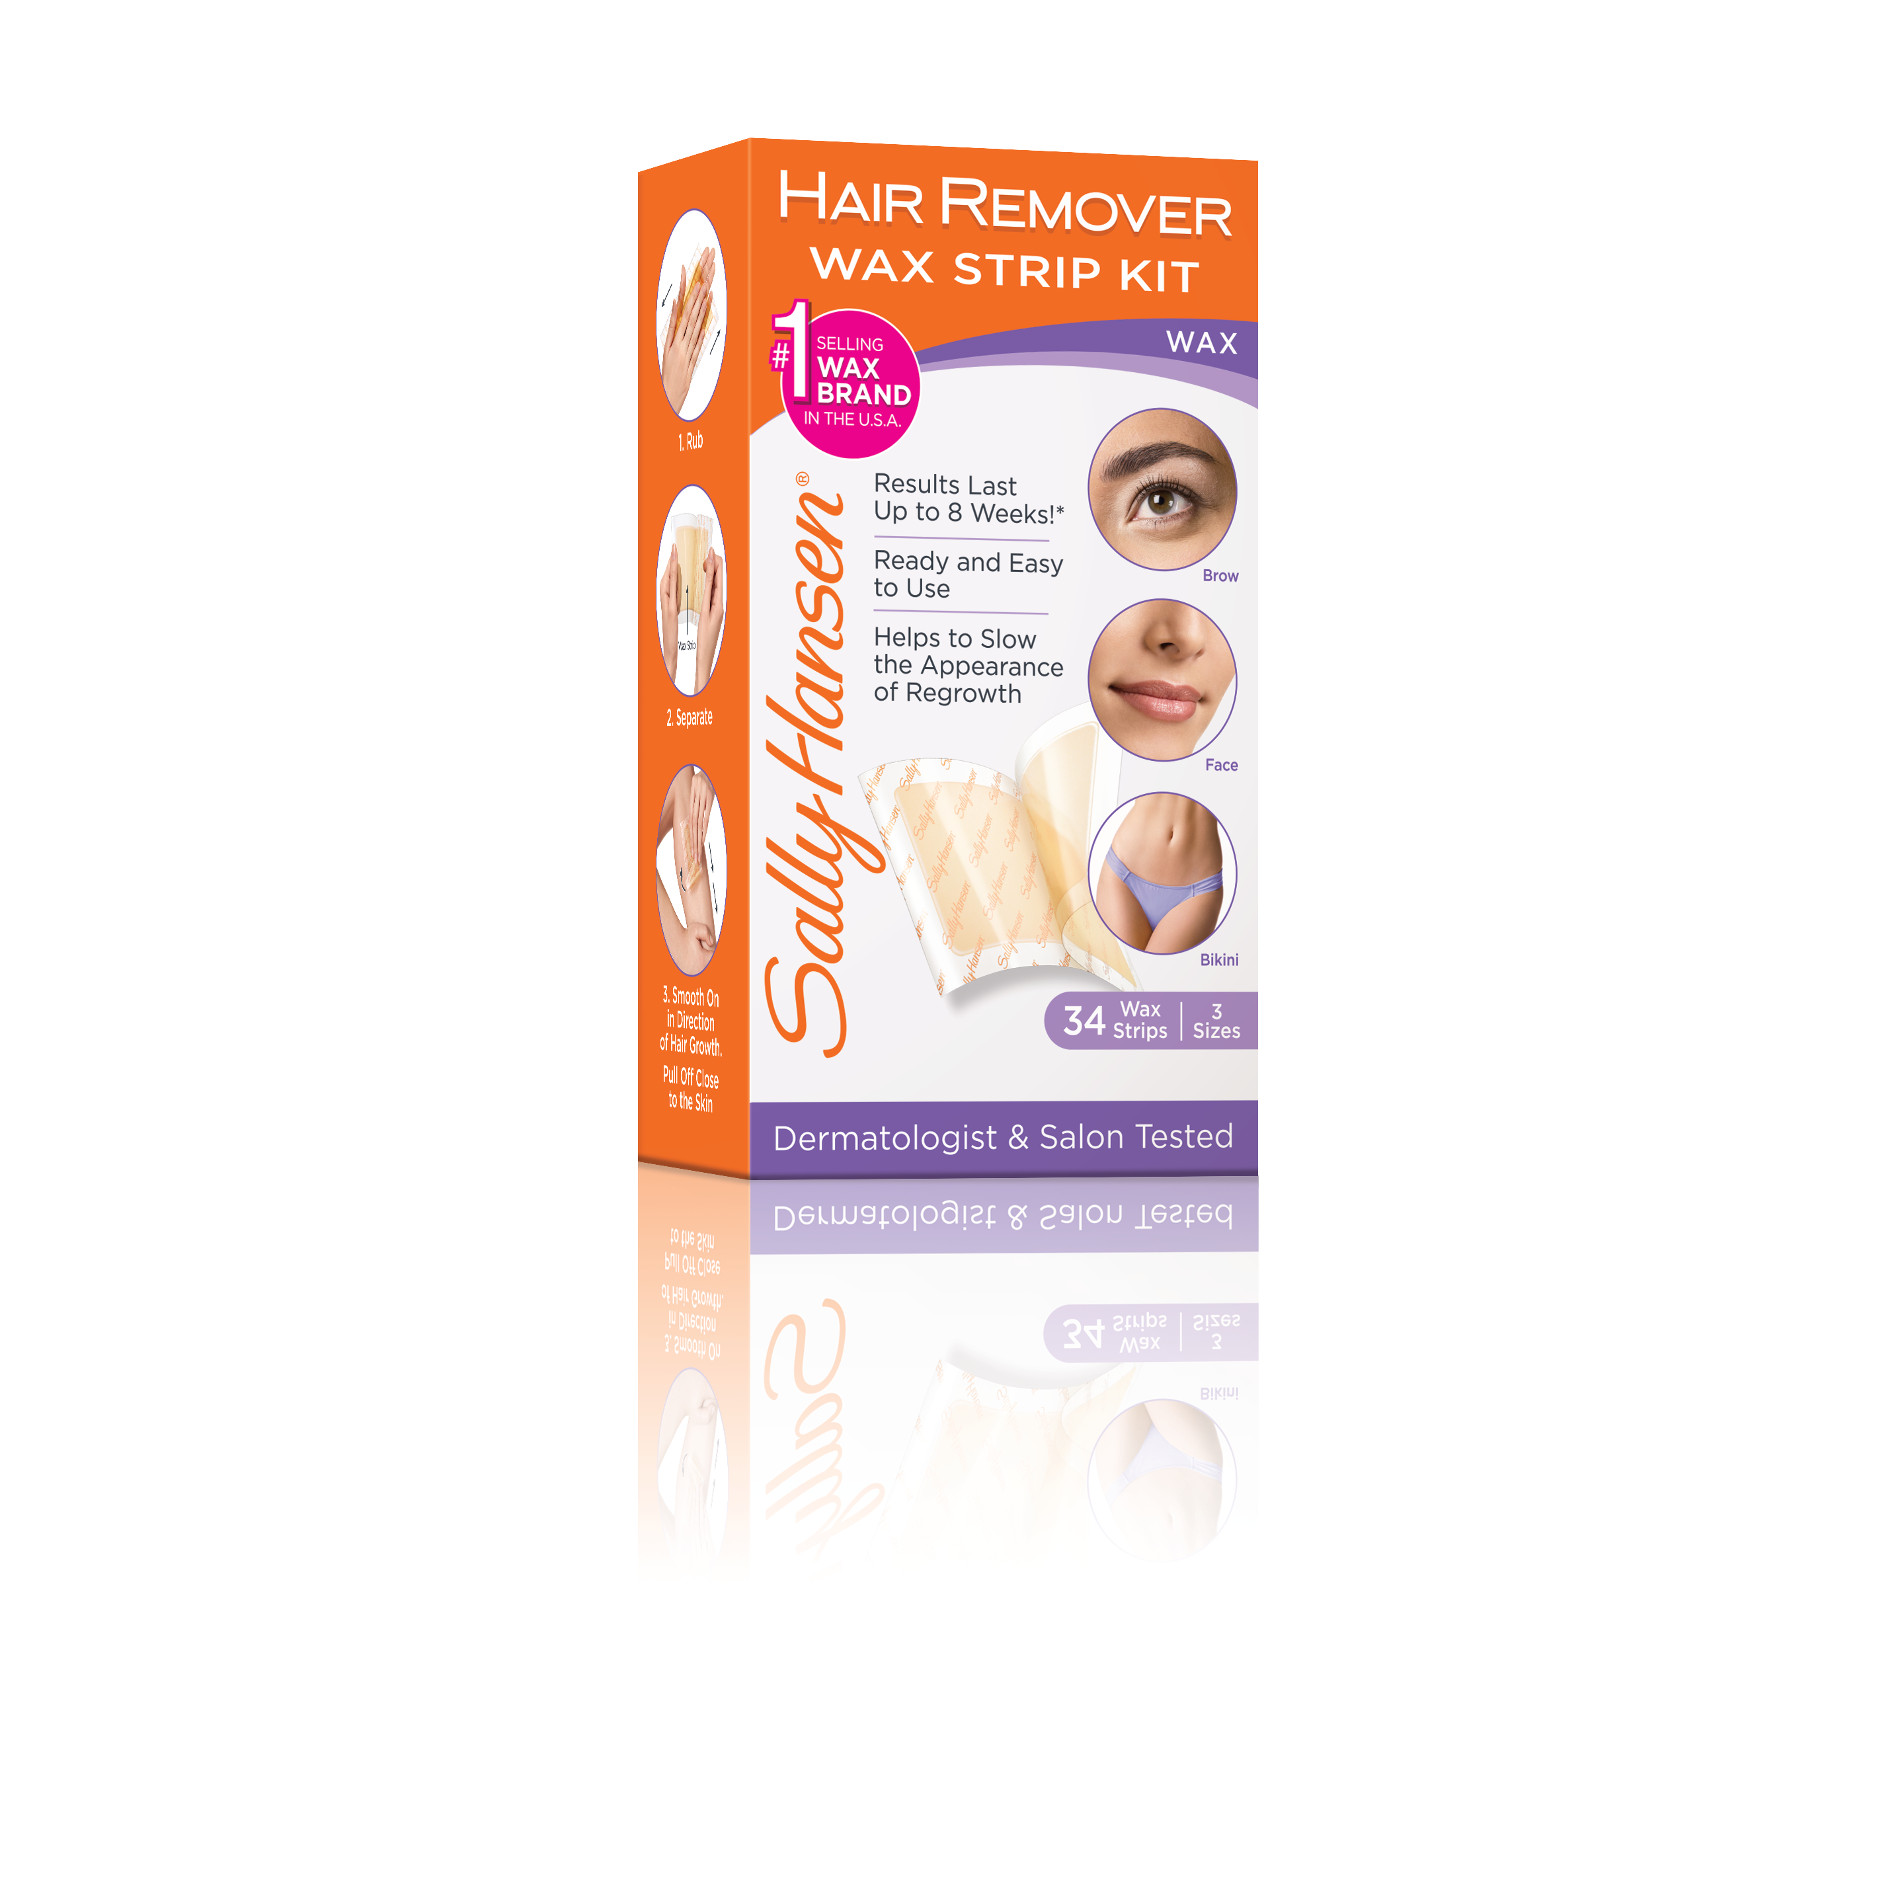 Sally Hansen Hair Remover Wax Strips Kits #ad #SimplySmooth